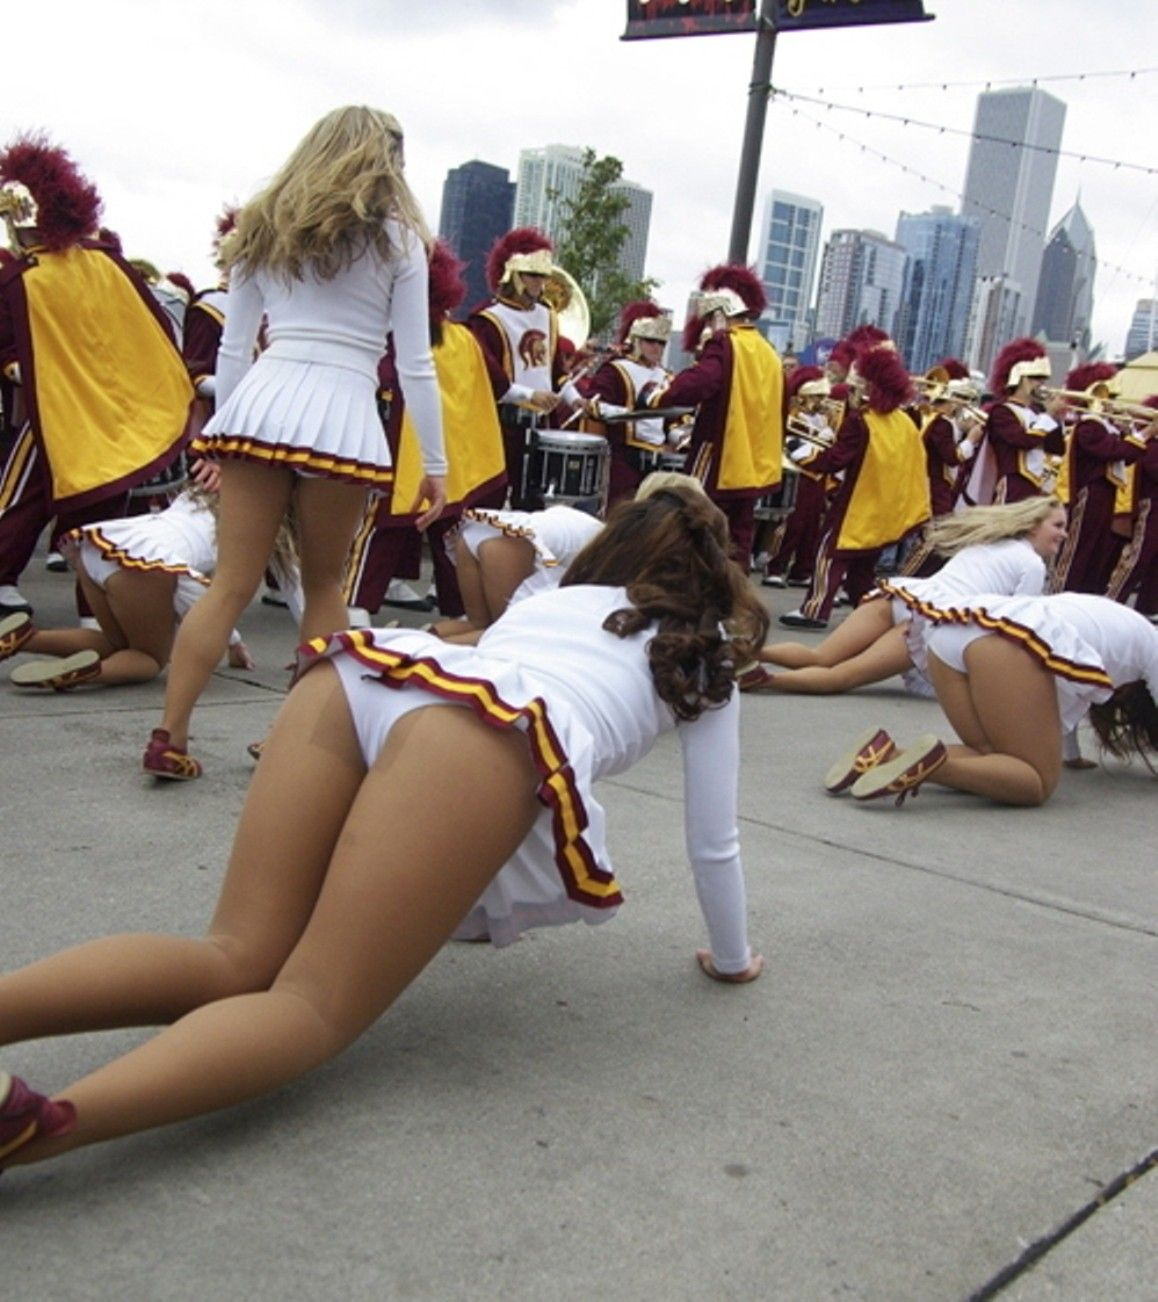 Voyeur college cheerleaders